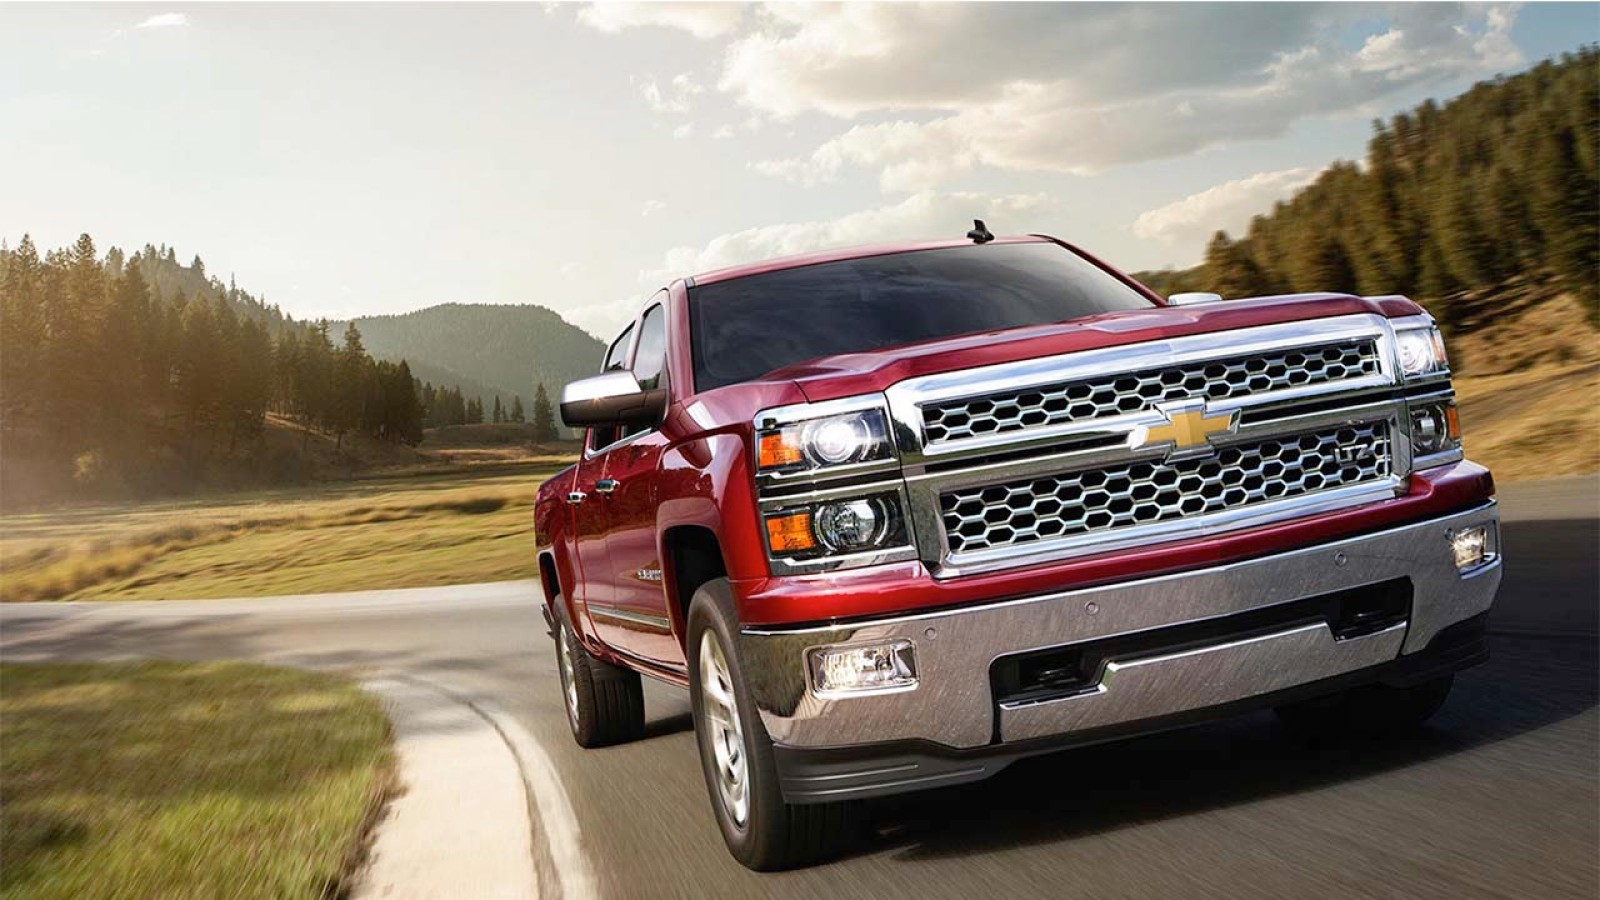 Used Chevy Silverado For Sale >> Used Chevrolet For Sale In Vancouver Bud Clary Auto Group